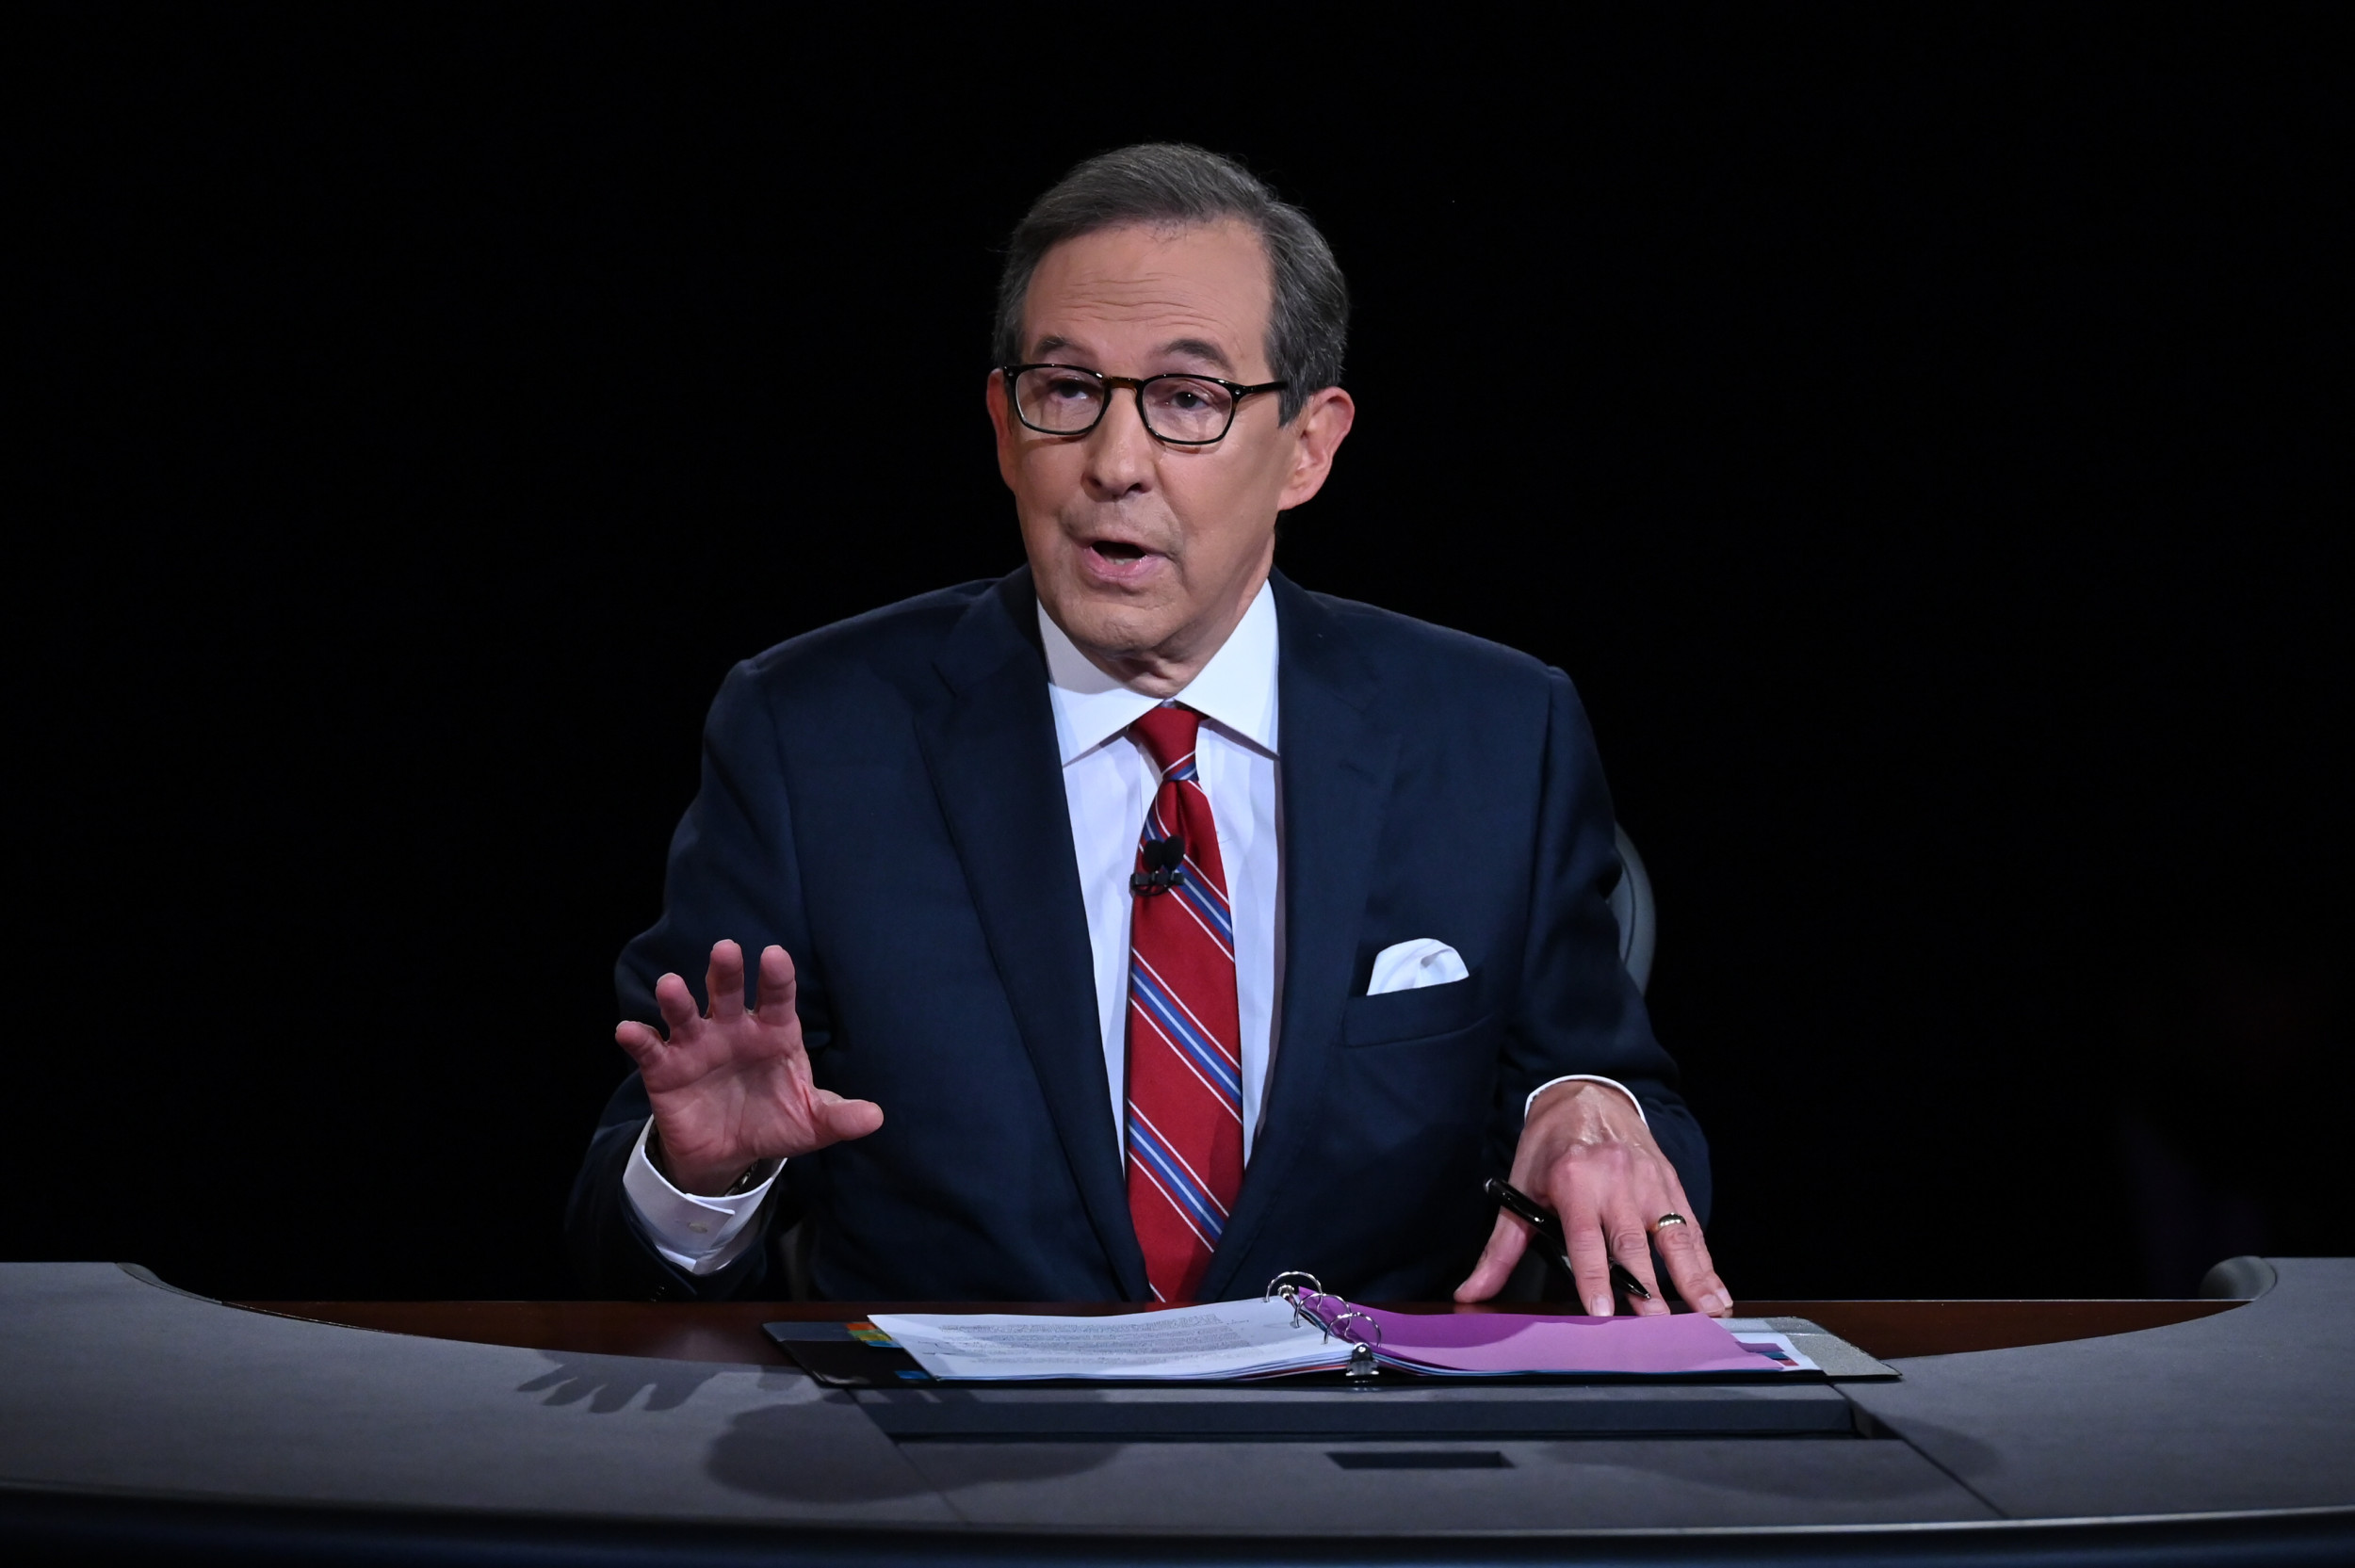 Fox News' Chris Wallace Dismisses Network Reporter's Claim That Trump's 'Winning Even as He's Losing'